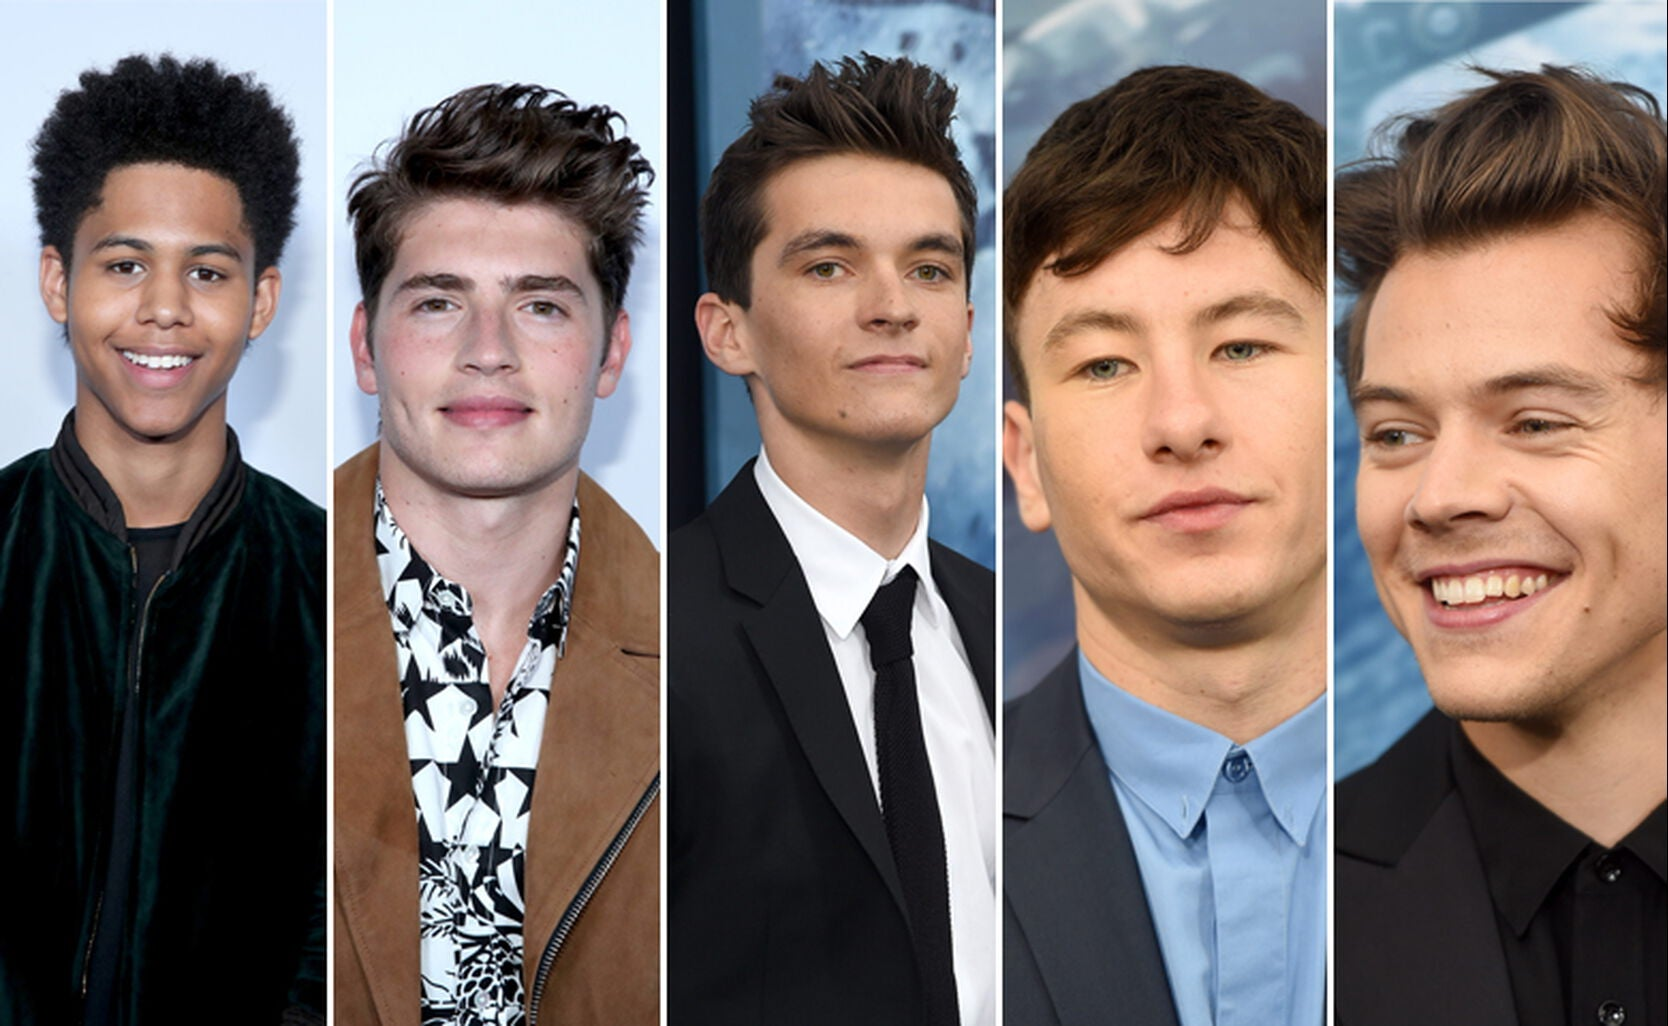 Rhenzy Feliz, Gregg Sulkin, Fionn Whitehead, Barry Keoghan and Harry Styles